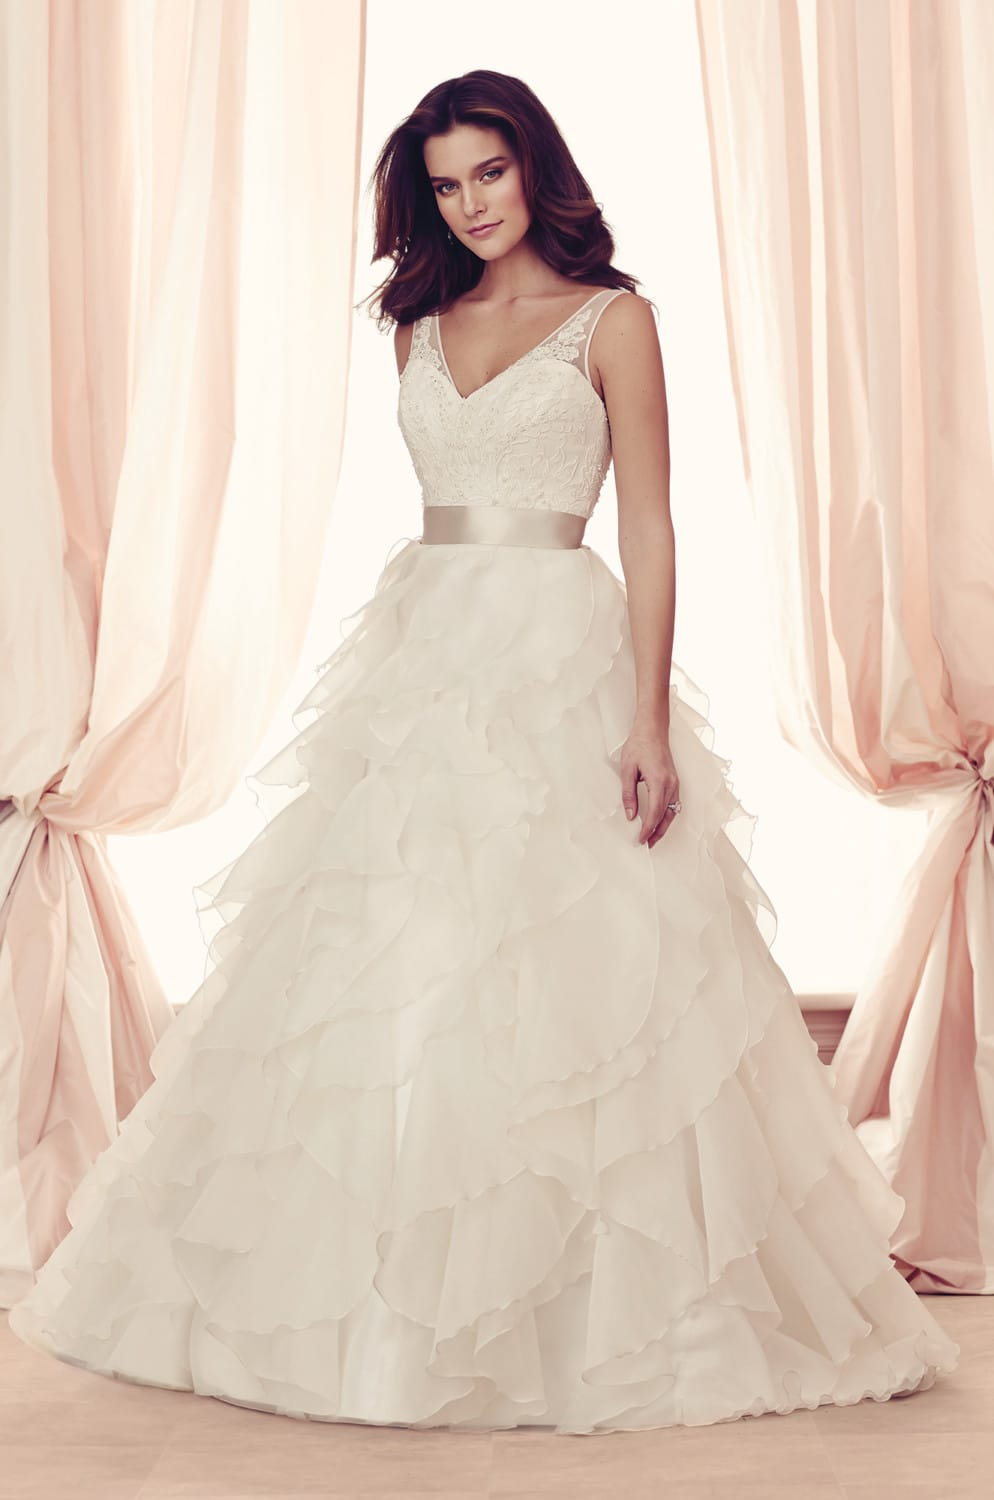 Paloma blanca 4514 wedding gown sell my wedding dress for Buy designer wedding dresses online